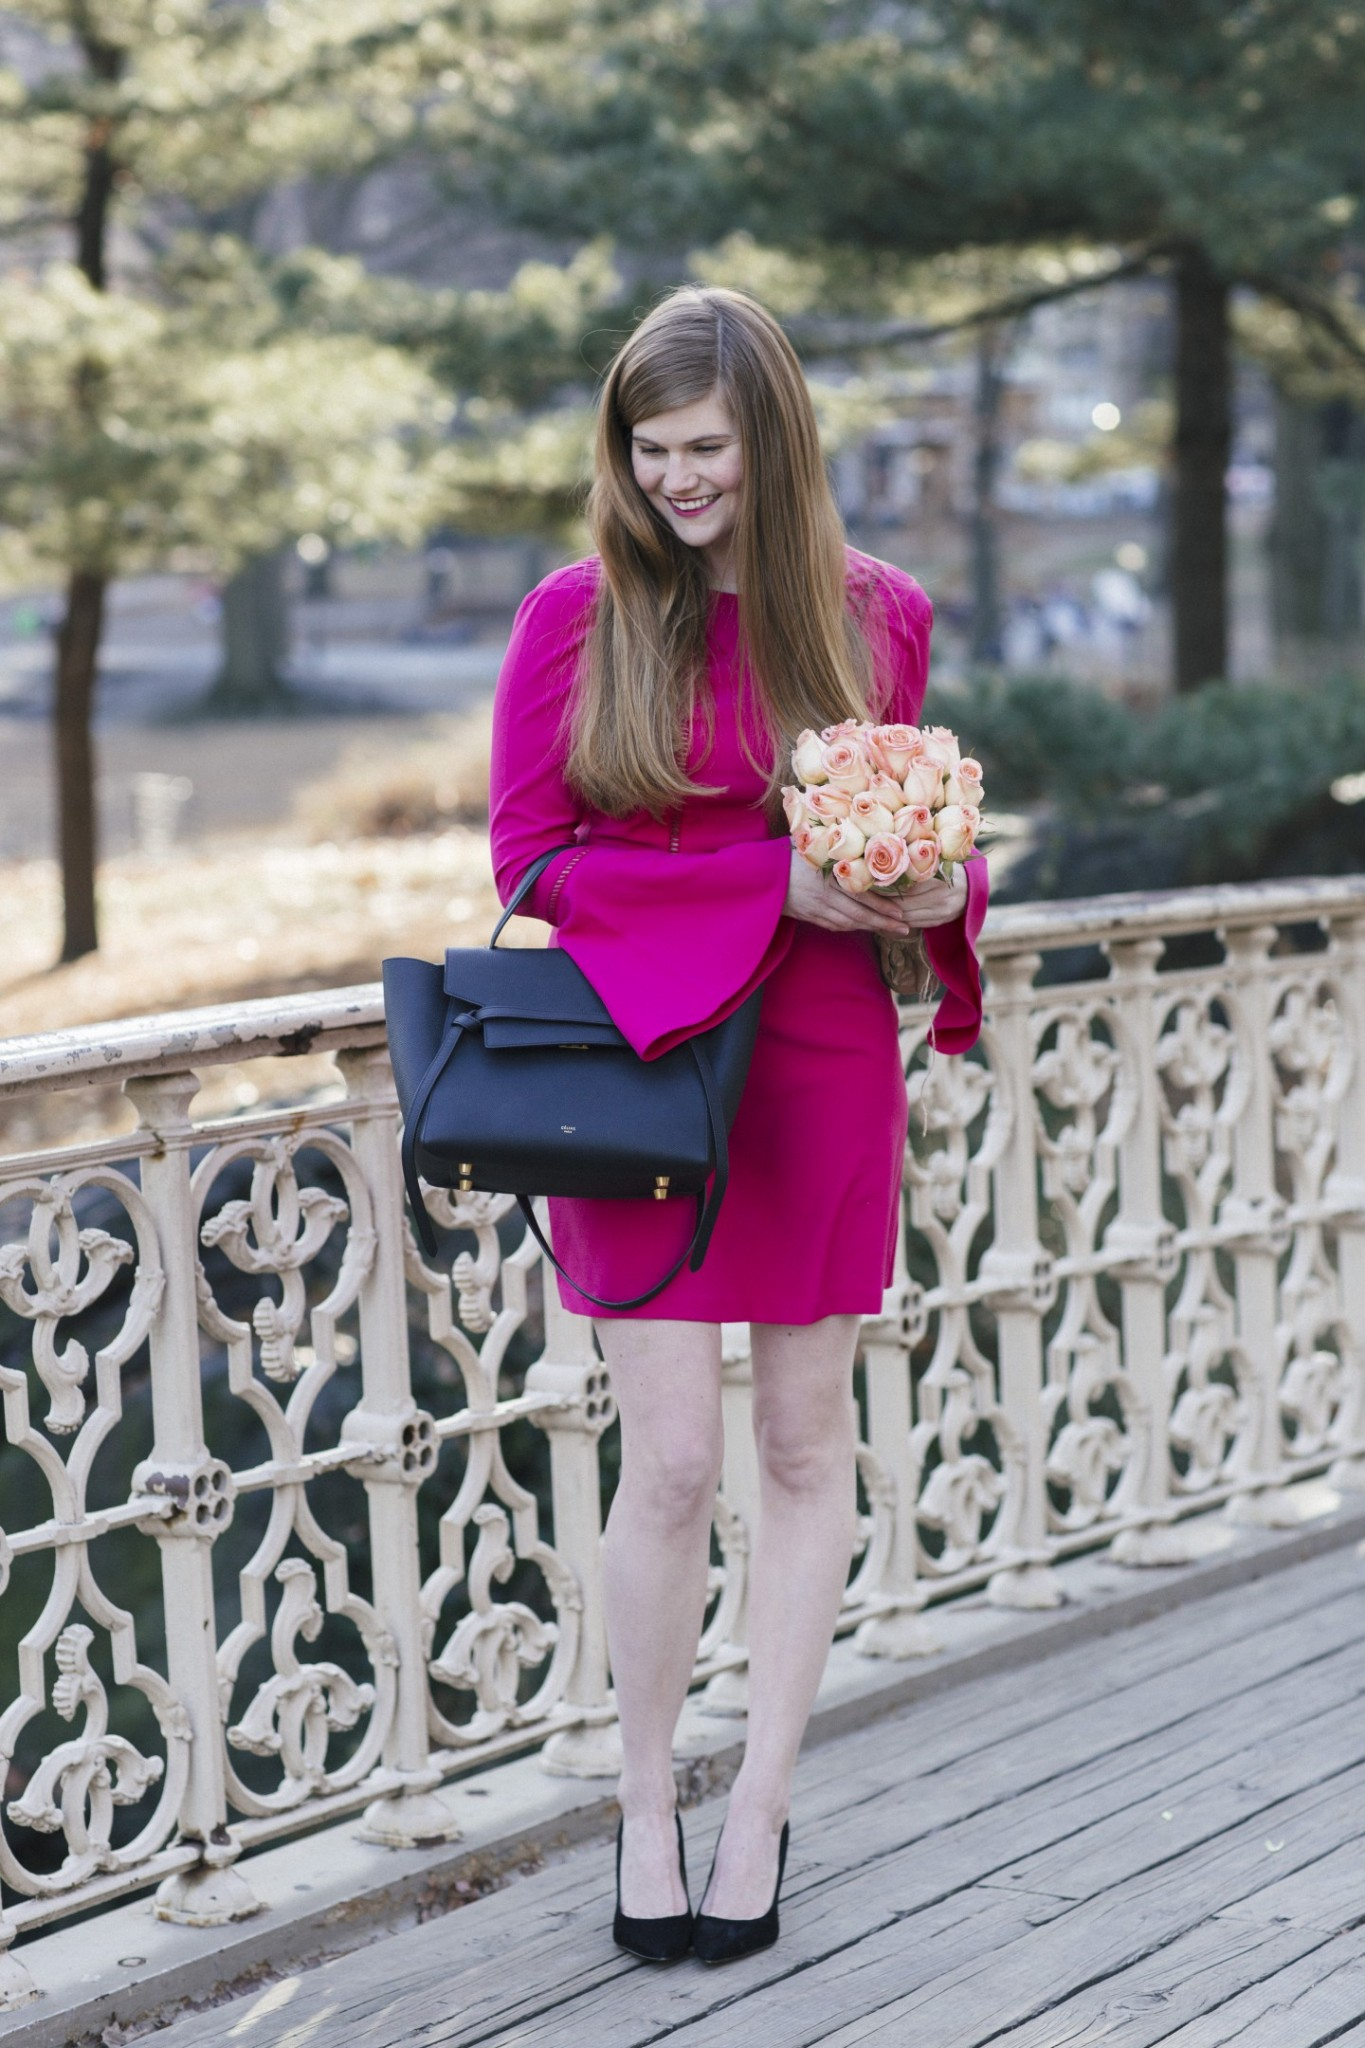 Lifestyle blogger Mollie Sheperdson shares a Valentine's Day date night outfit